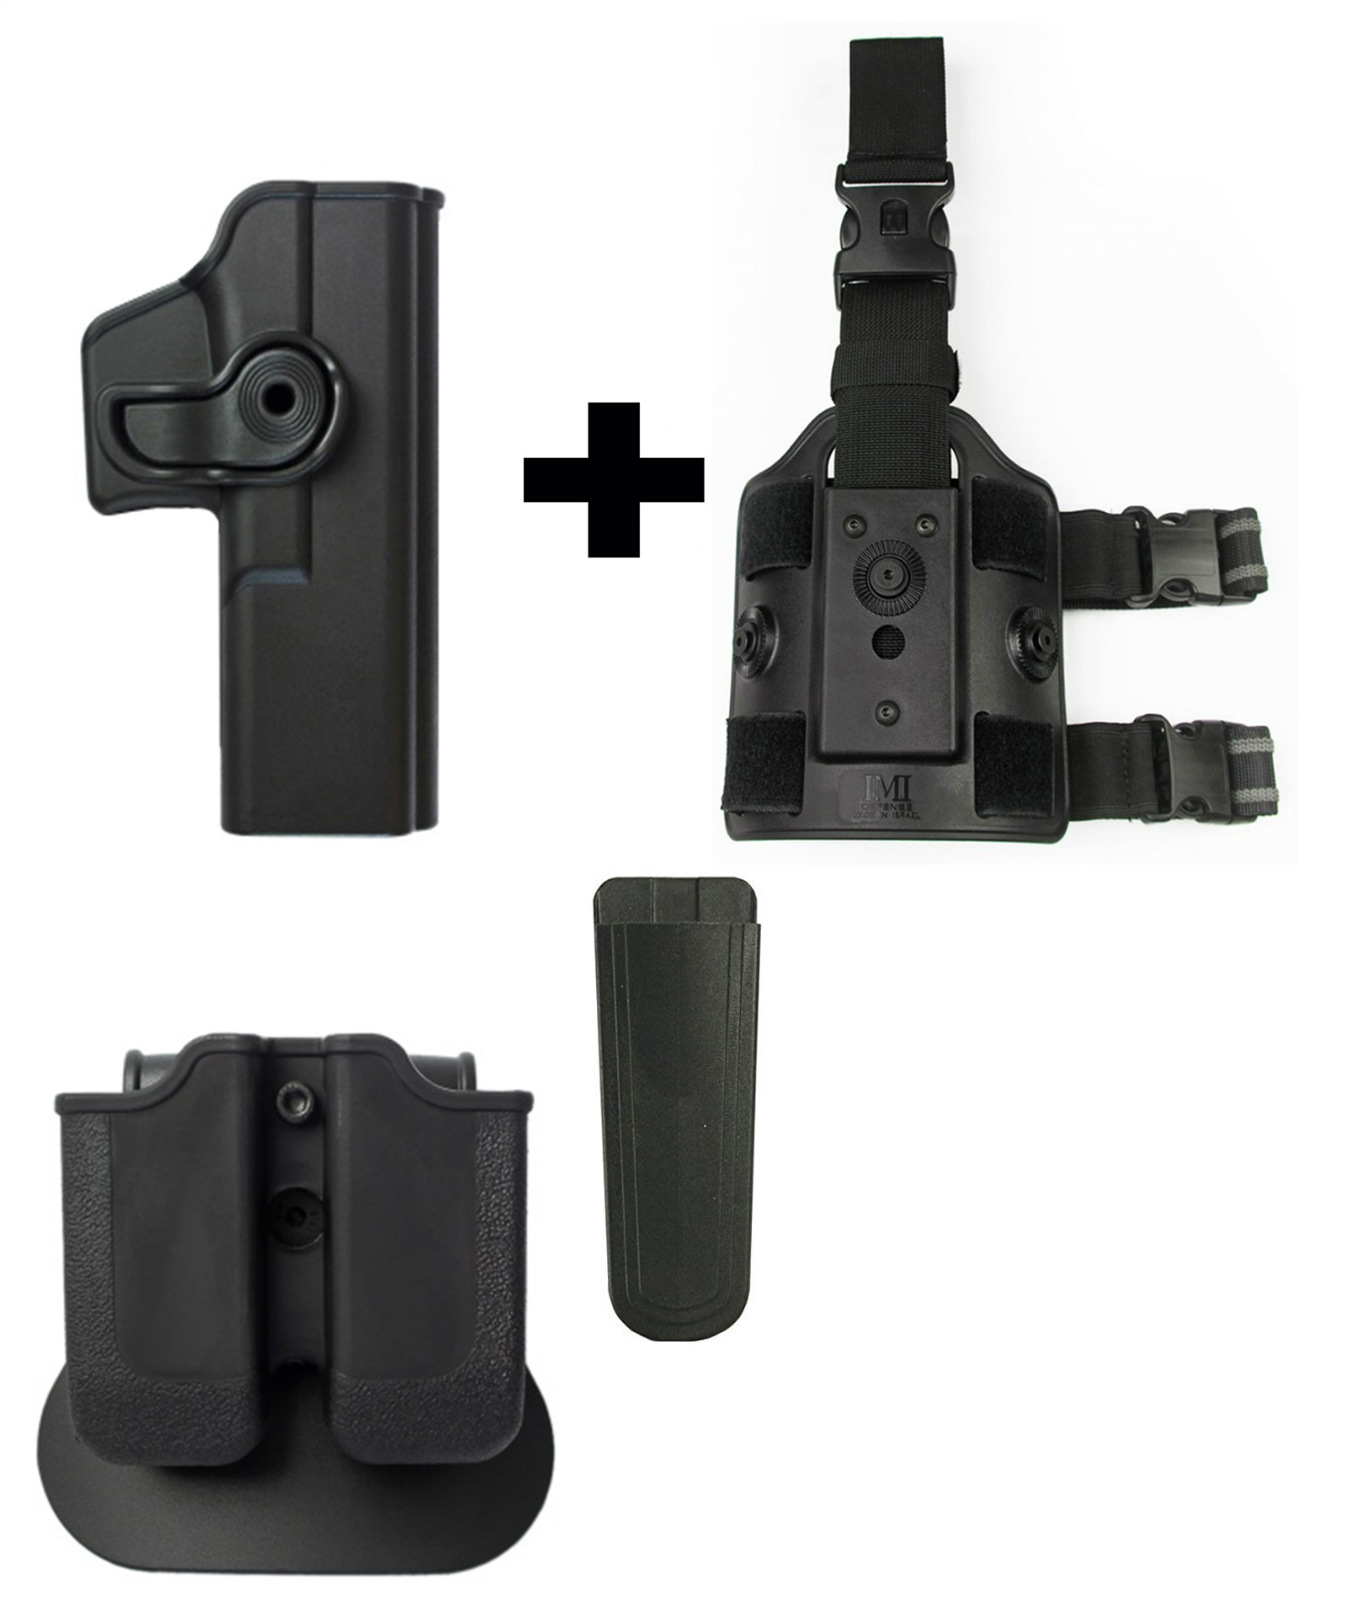 IMI Defense Z2000 MP00 Double Mag Holder & Paddle + Z1010 Rotate Holster Glock 17 22 28 31 34 Right Hand Gen 4... by